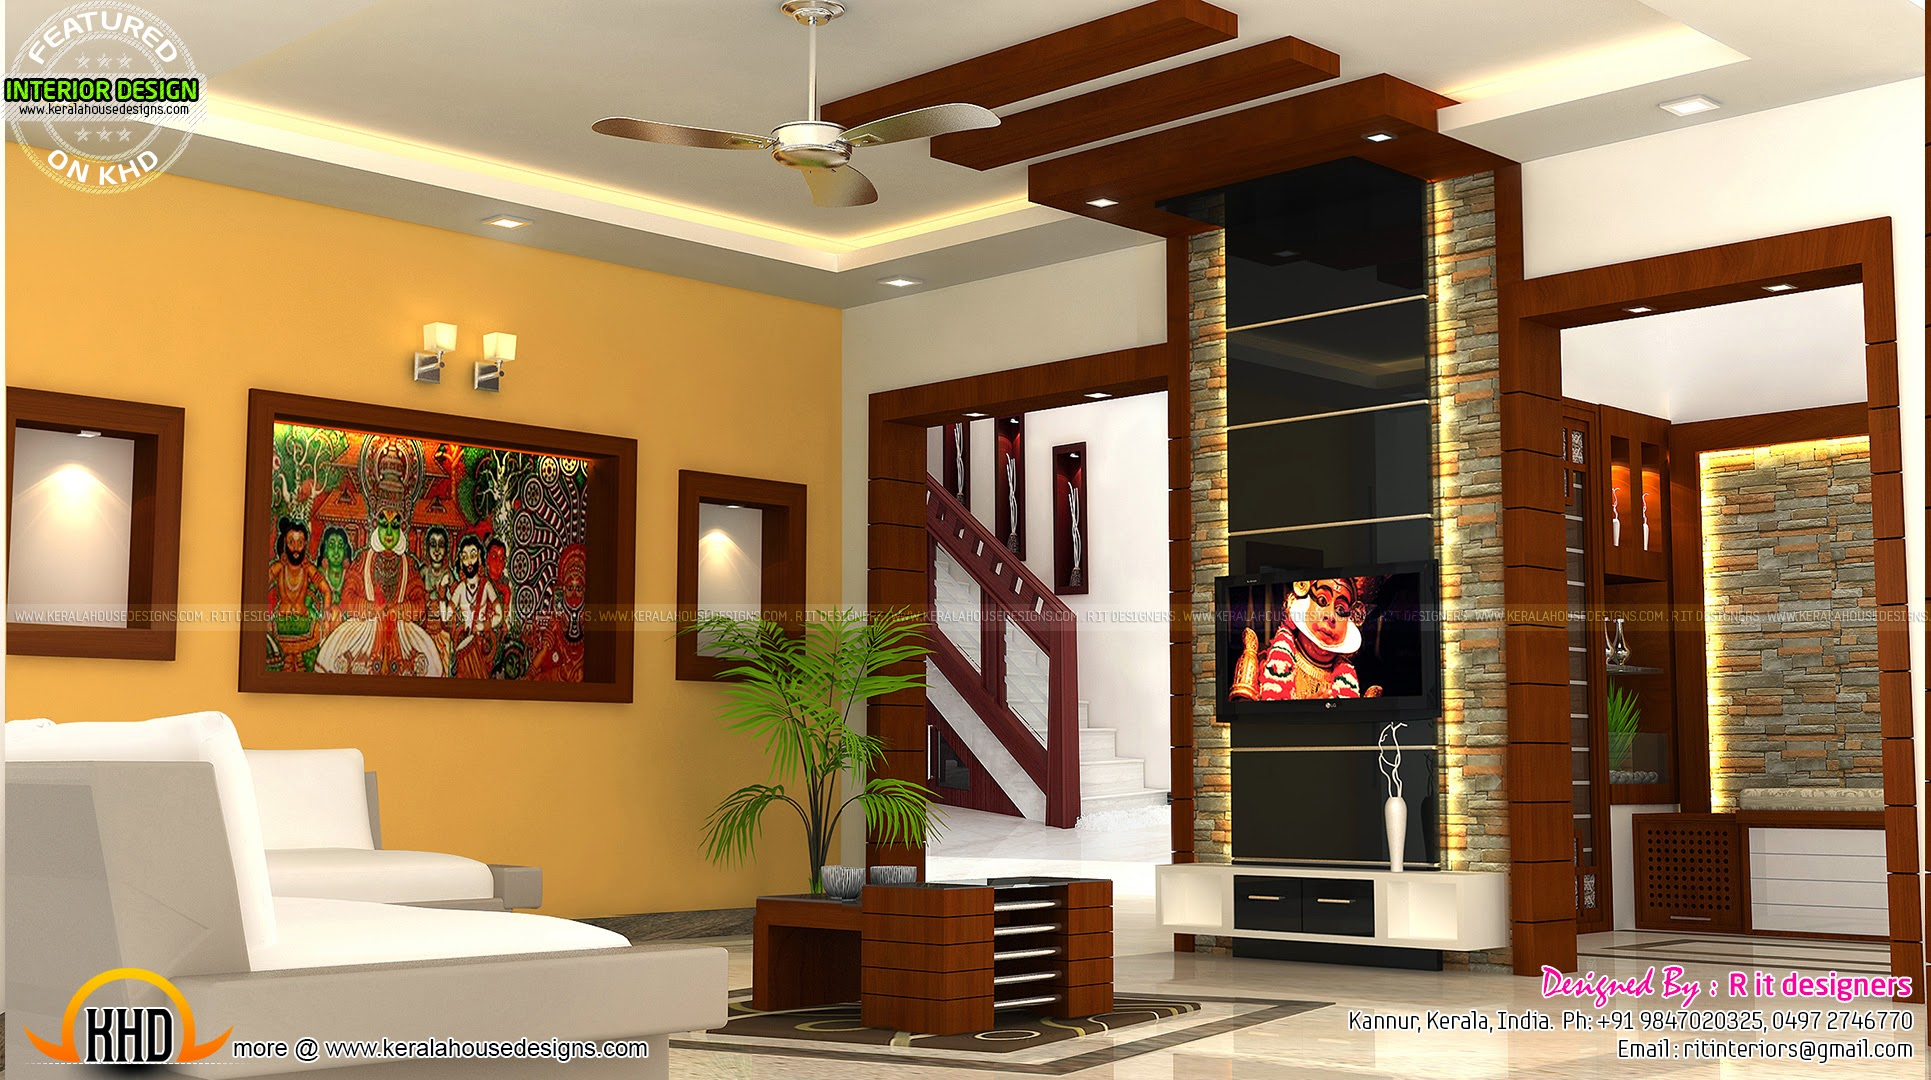 Kerala interior design with cost kerala home design and for Kerala house living room interior design